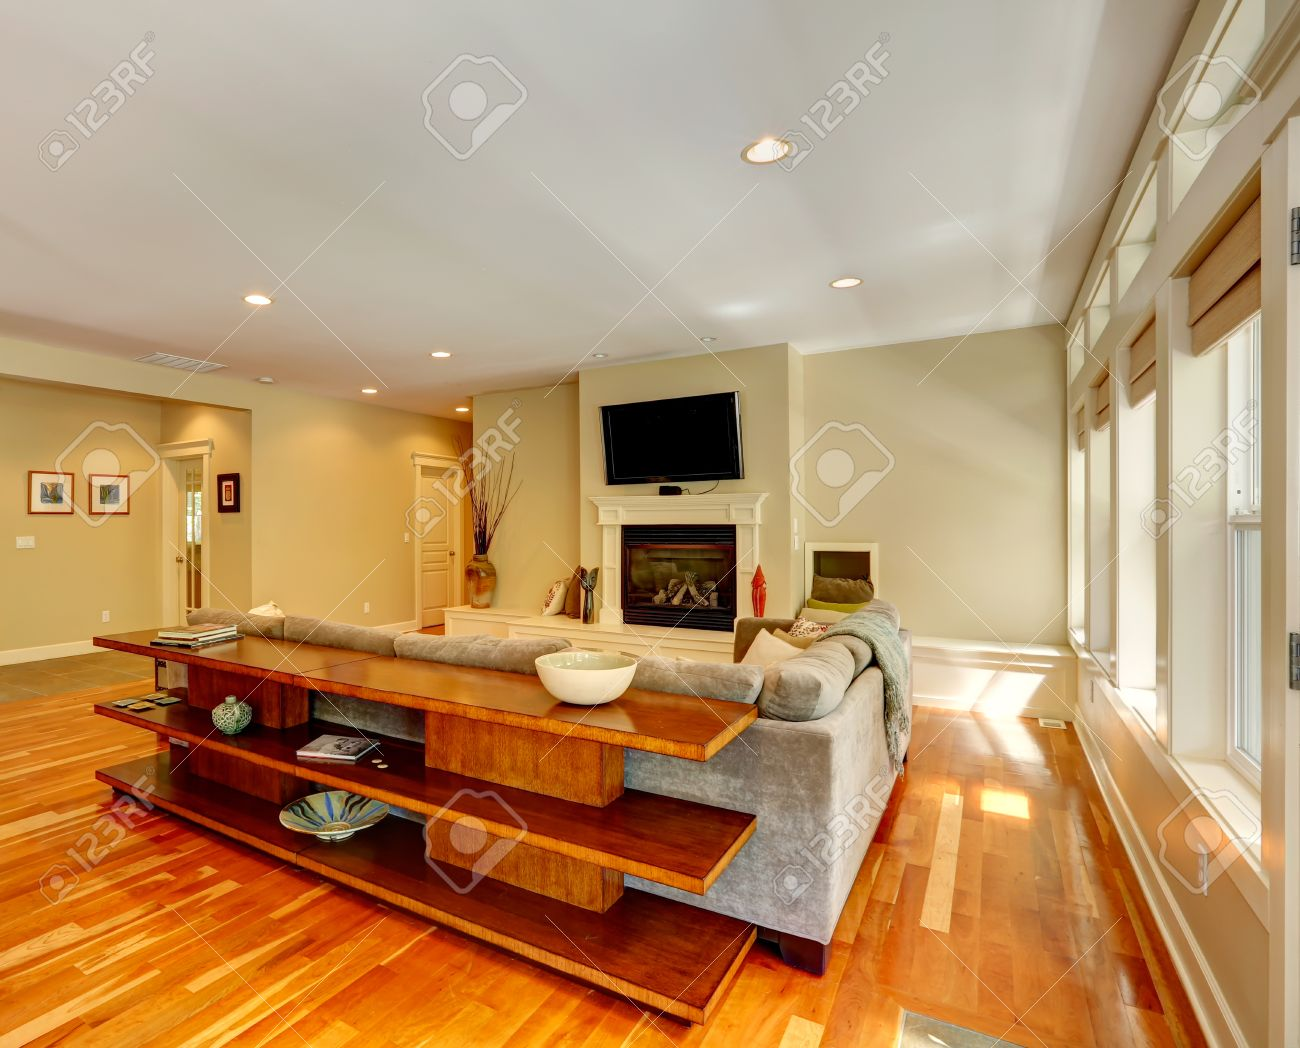 Luxury Living Rooms With Tv luxury living room with fireplace and tv. view of couch and three